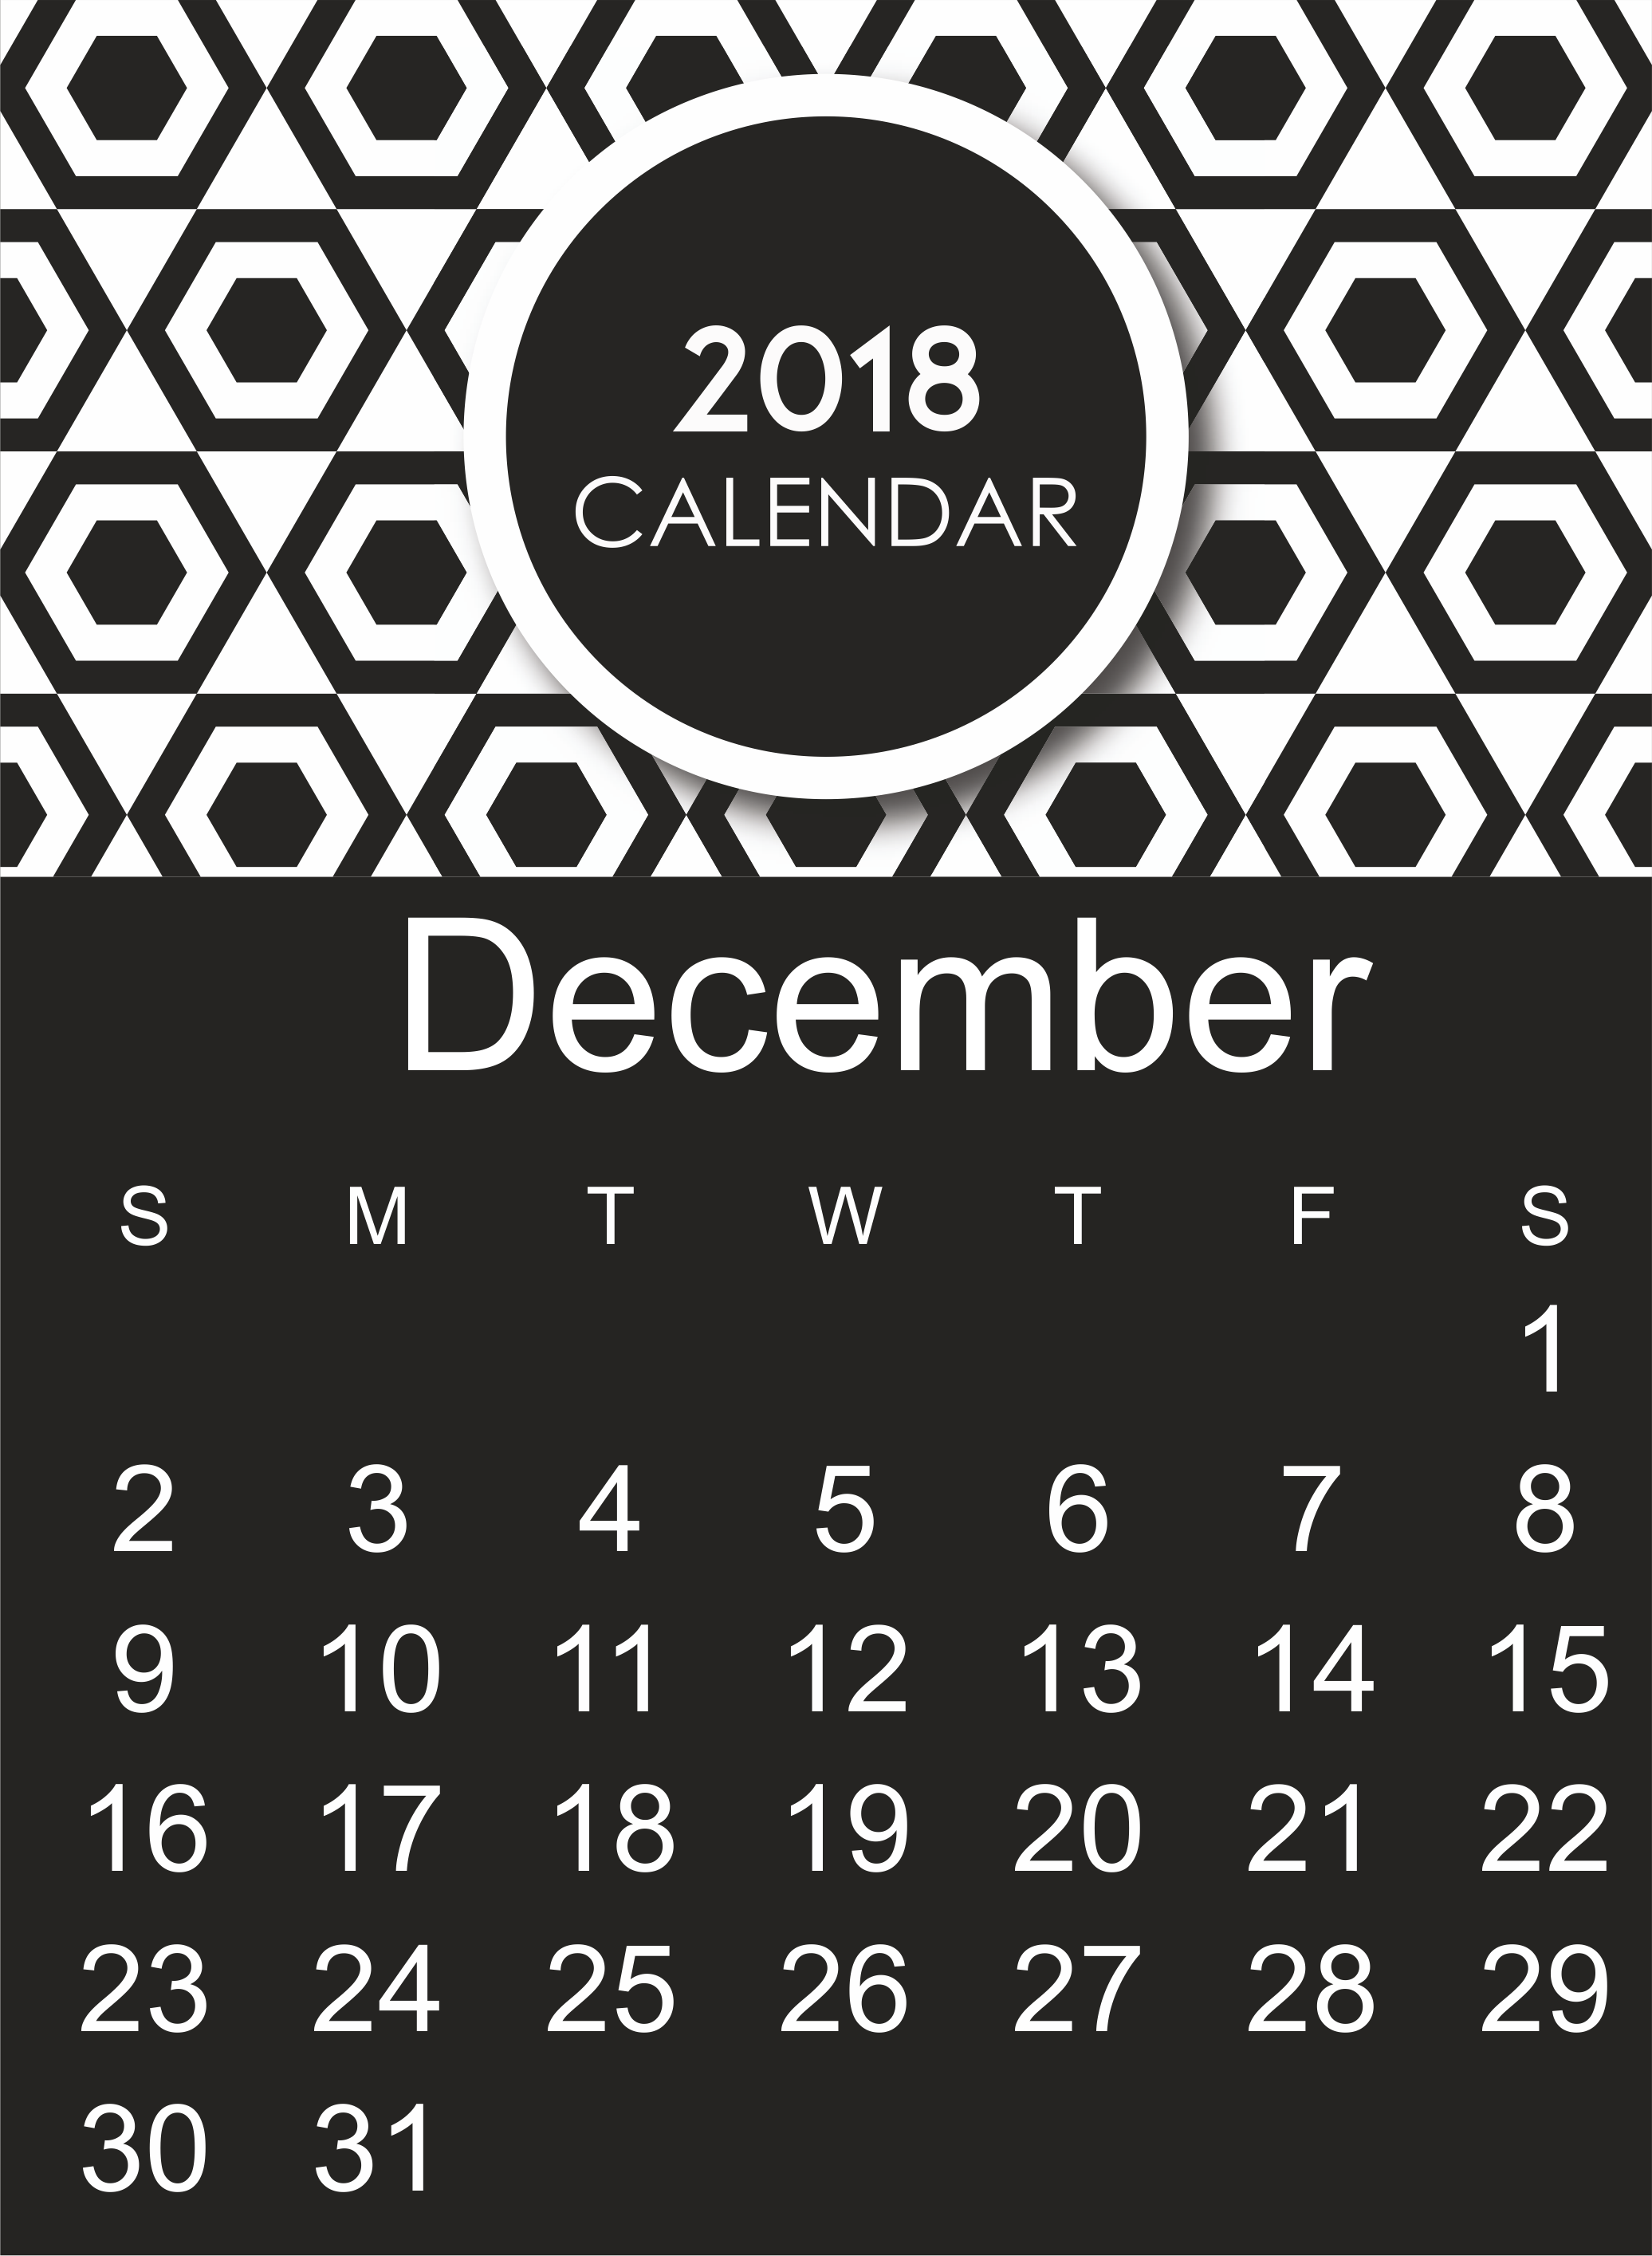 Stylish December 2018 Calendar With Holidays Images